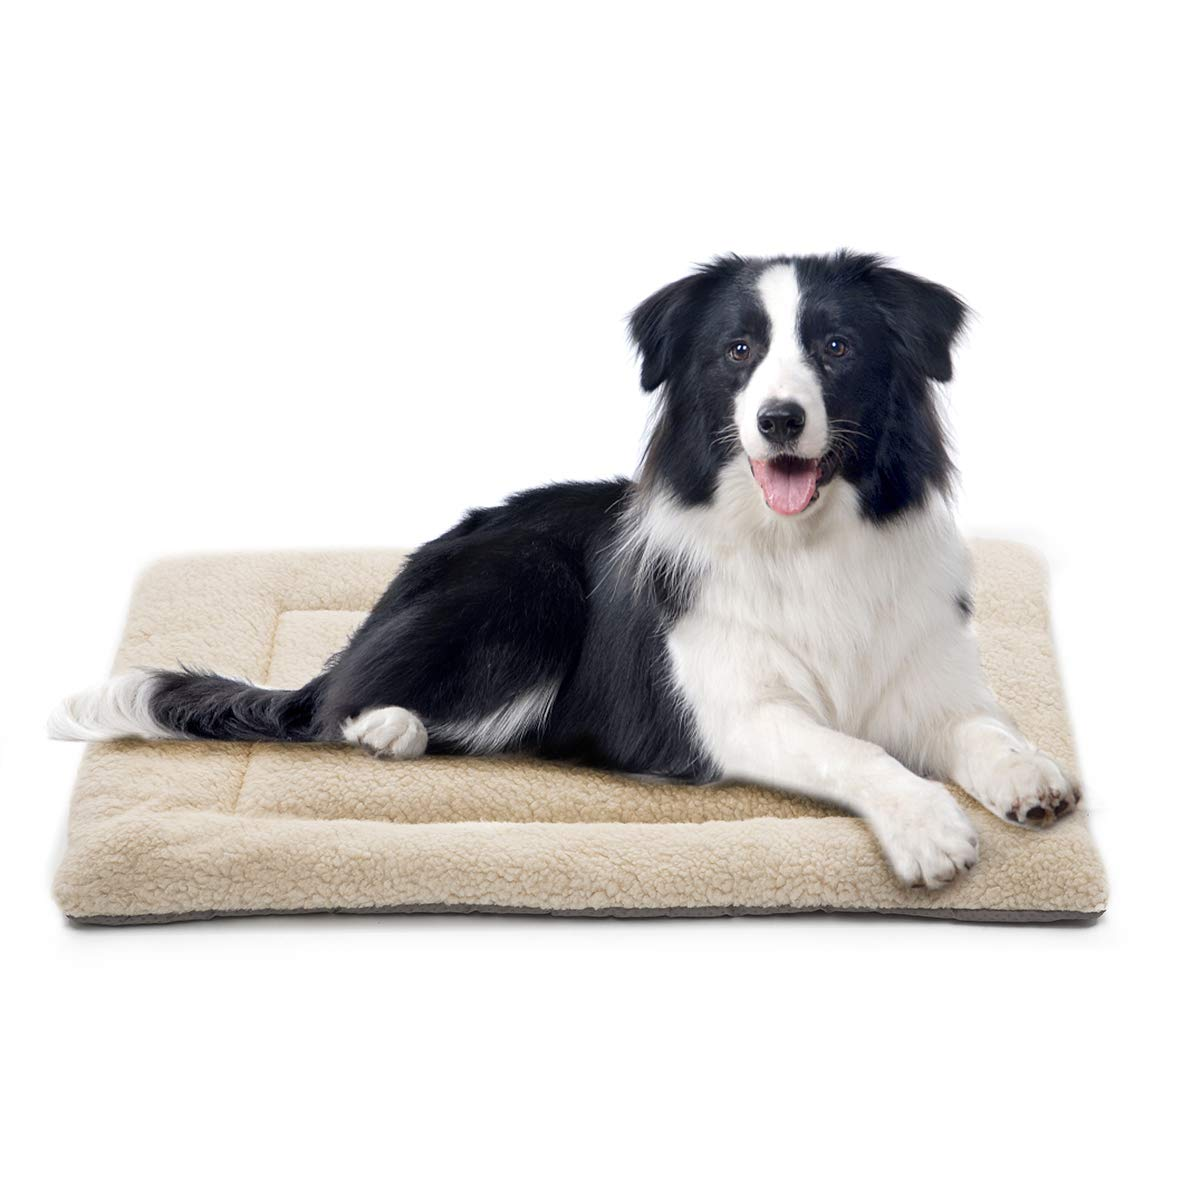 INVENHO Dog Bed Mat Comfortable Soft Crate Pad Anti-Slip Machine Washable Pad Dog Crate Pad Pet Bed for Dogs & Cats Beige 40'' x 27''